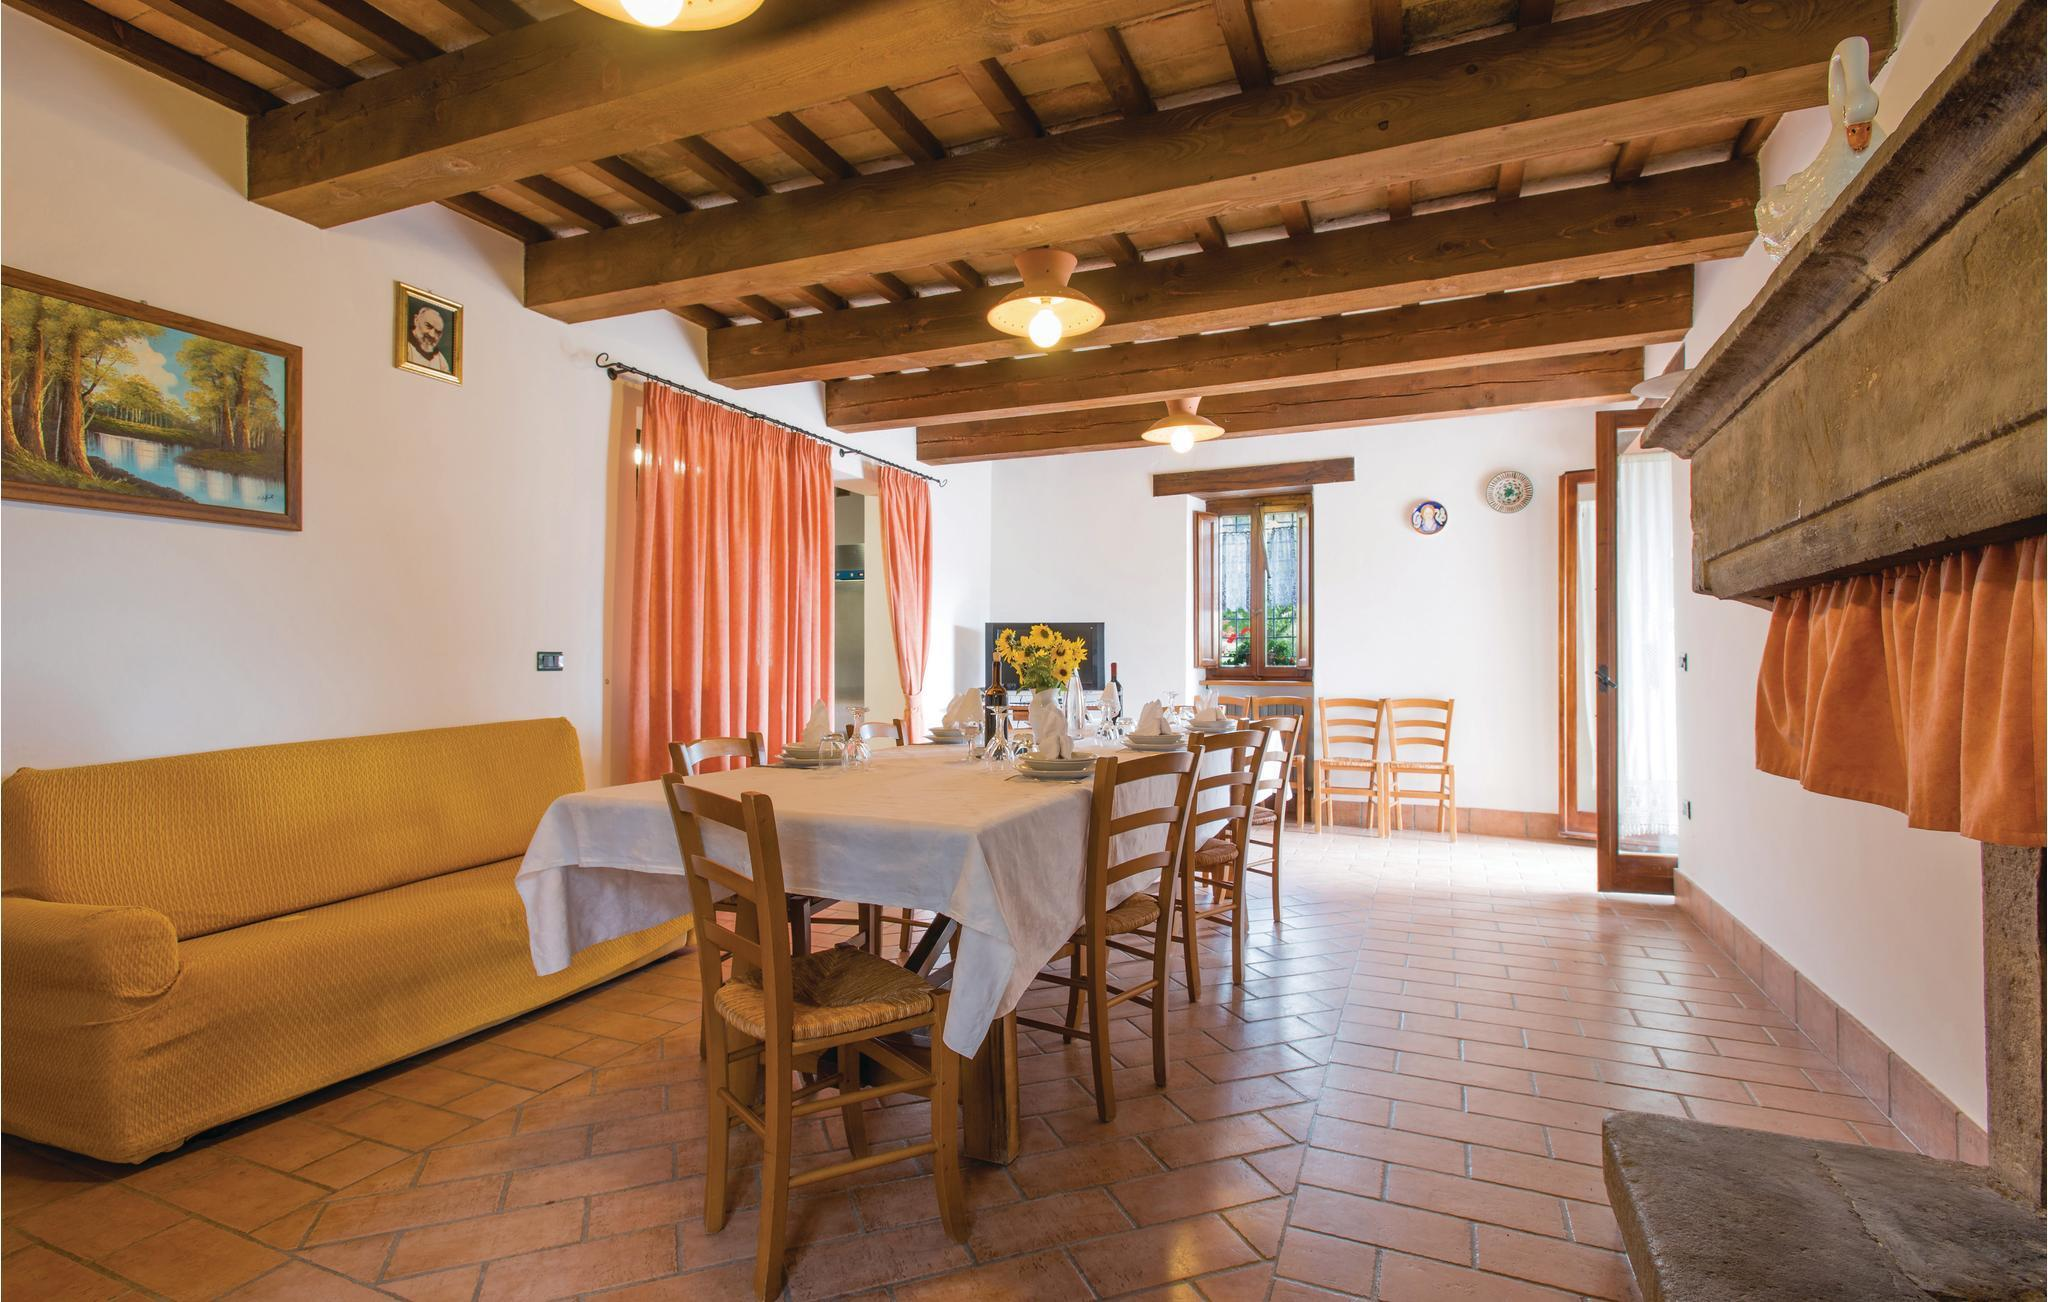 Mittelalter Esszimmer Holiday Home Apartment 10 Persons Monte Scatto Acqualagna 61043 Cagli Pu